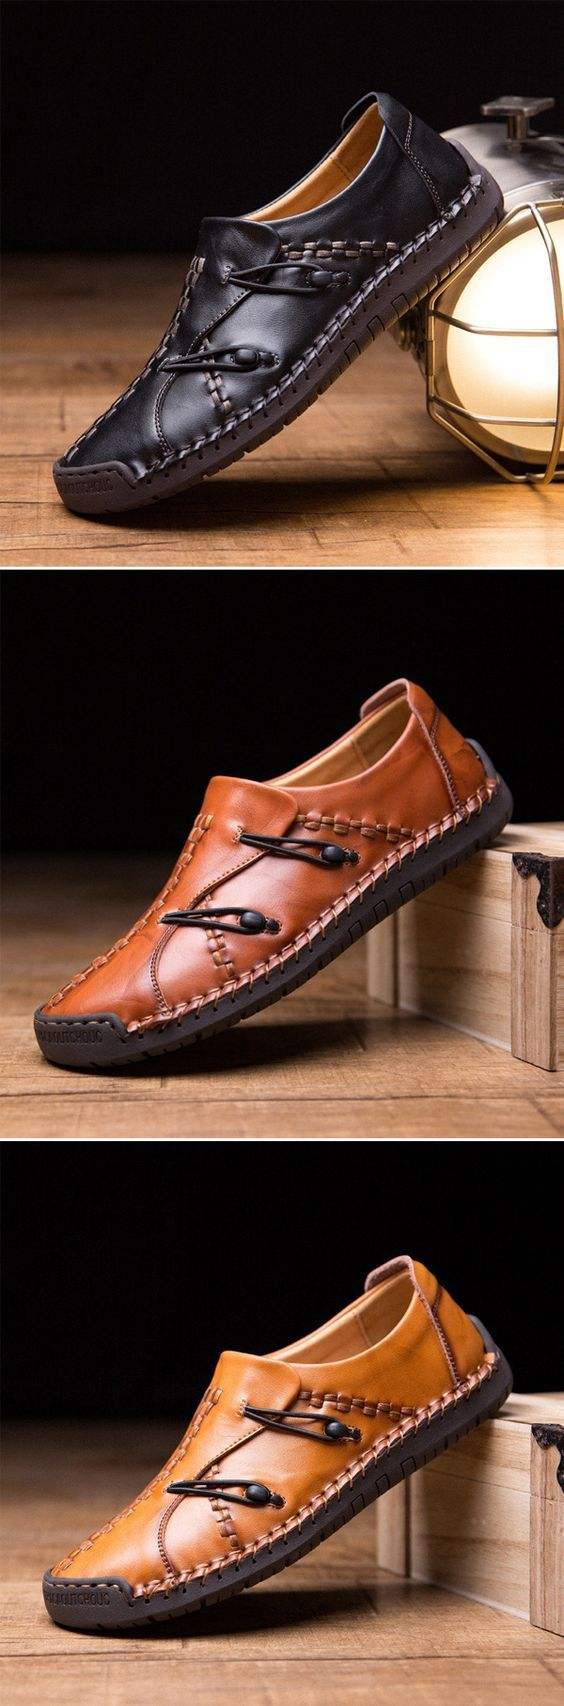 US$43.68 Men's Hand Stitching Stylish Soft Sole Slip On Loafers Casual Leather Shoes #WomenCasualShoes